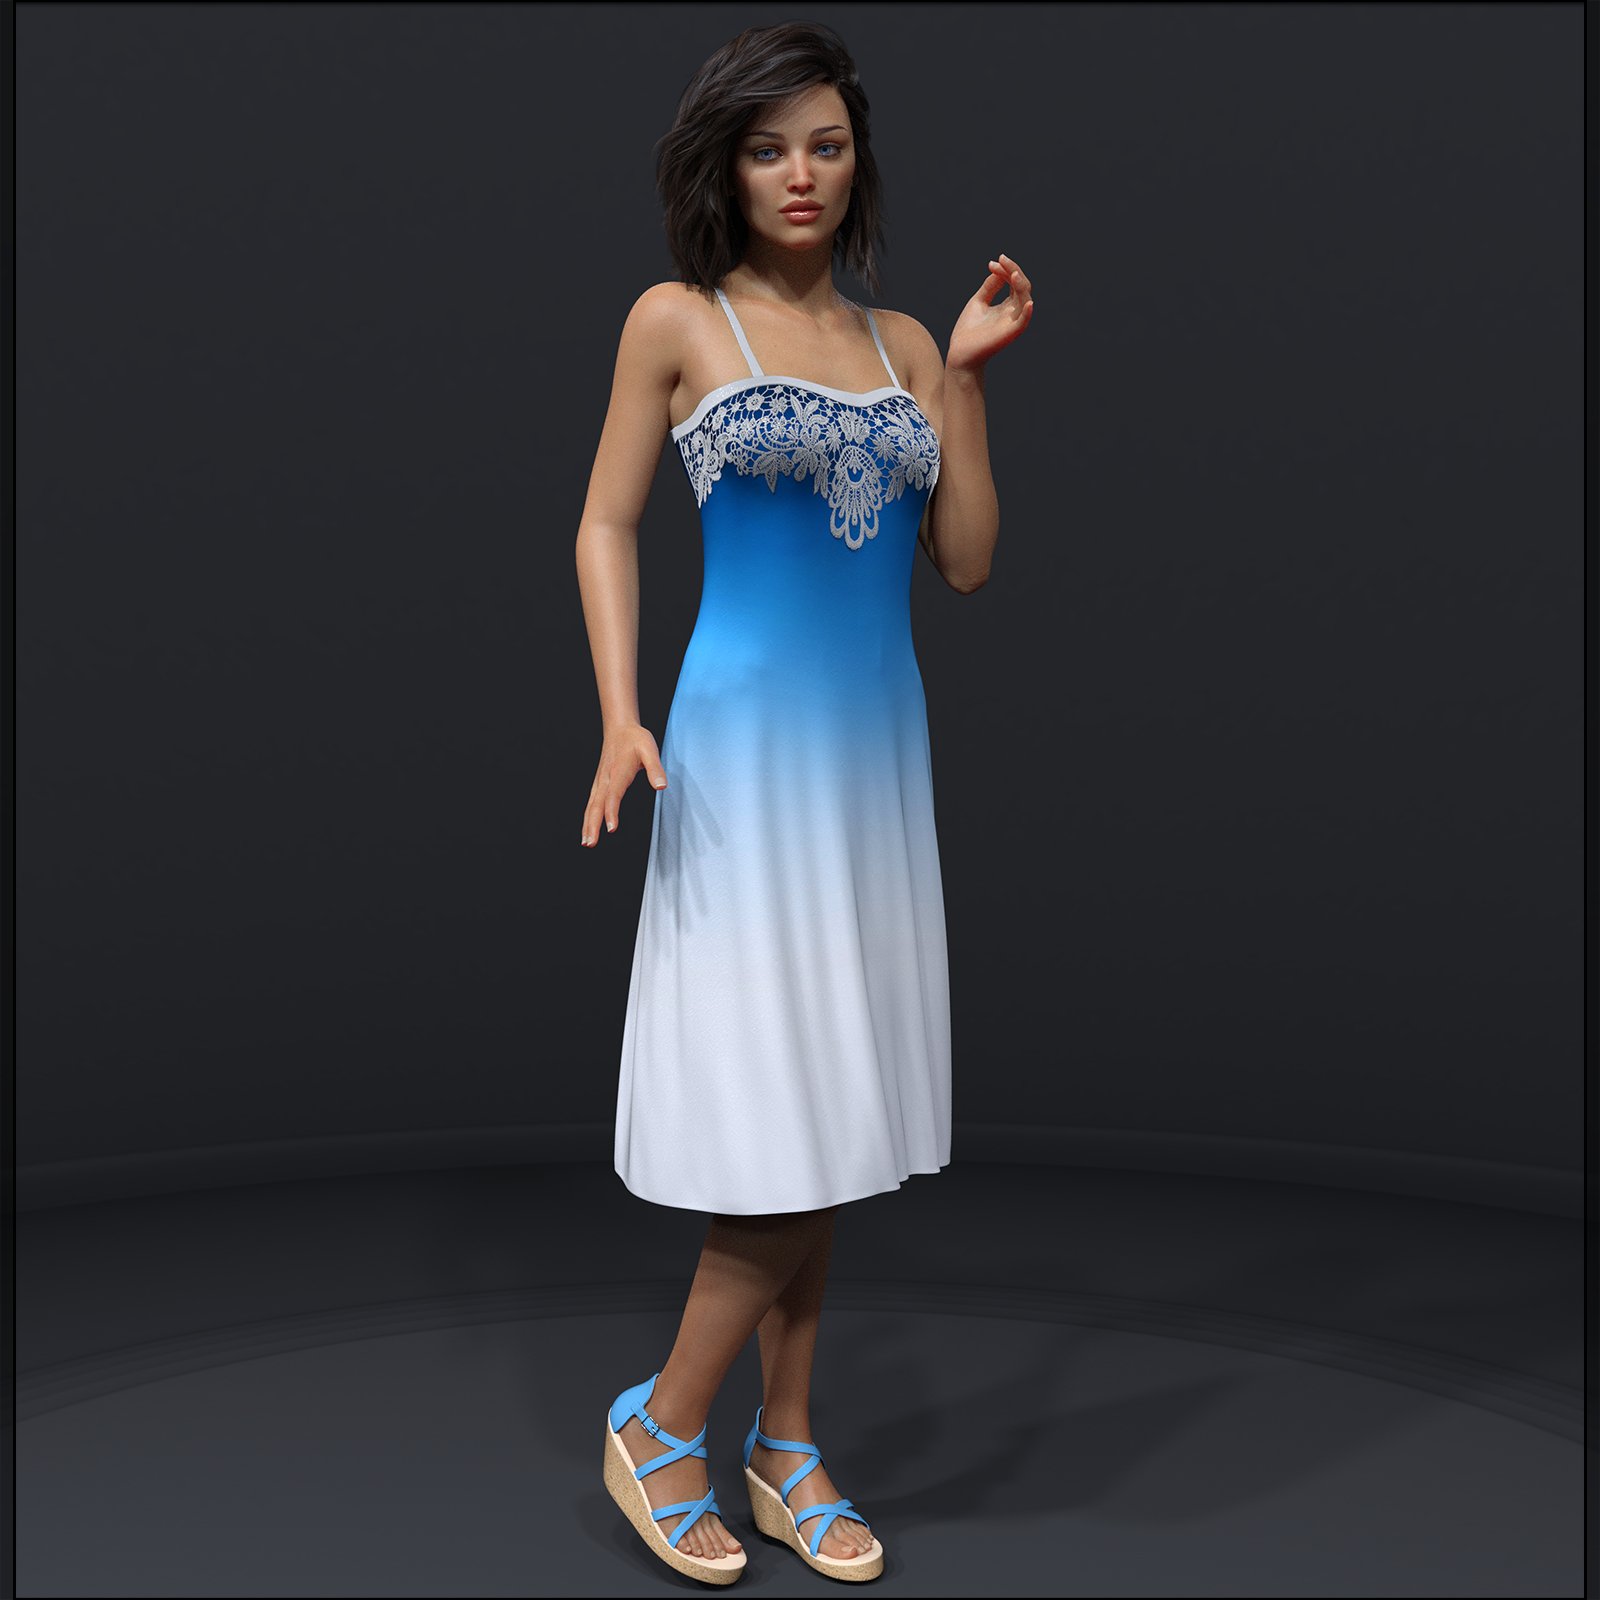 Ombre Fashion dForce Dress for Genesis 8 Females